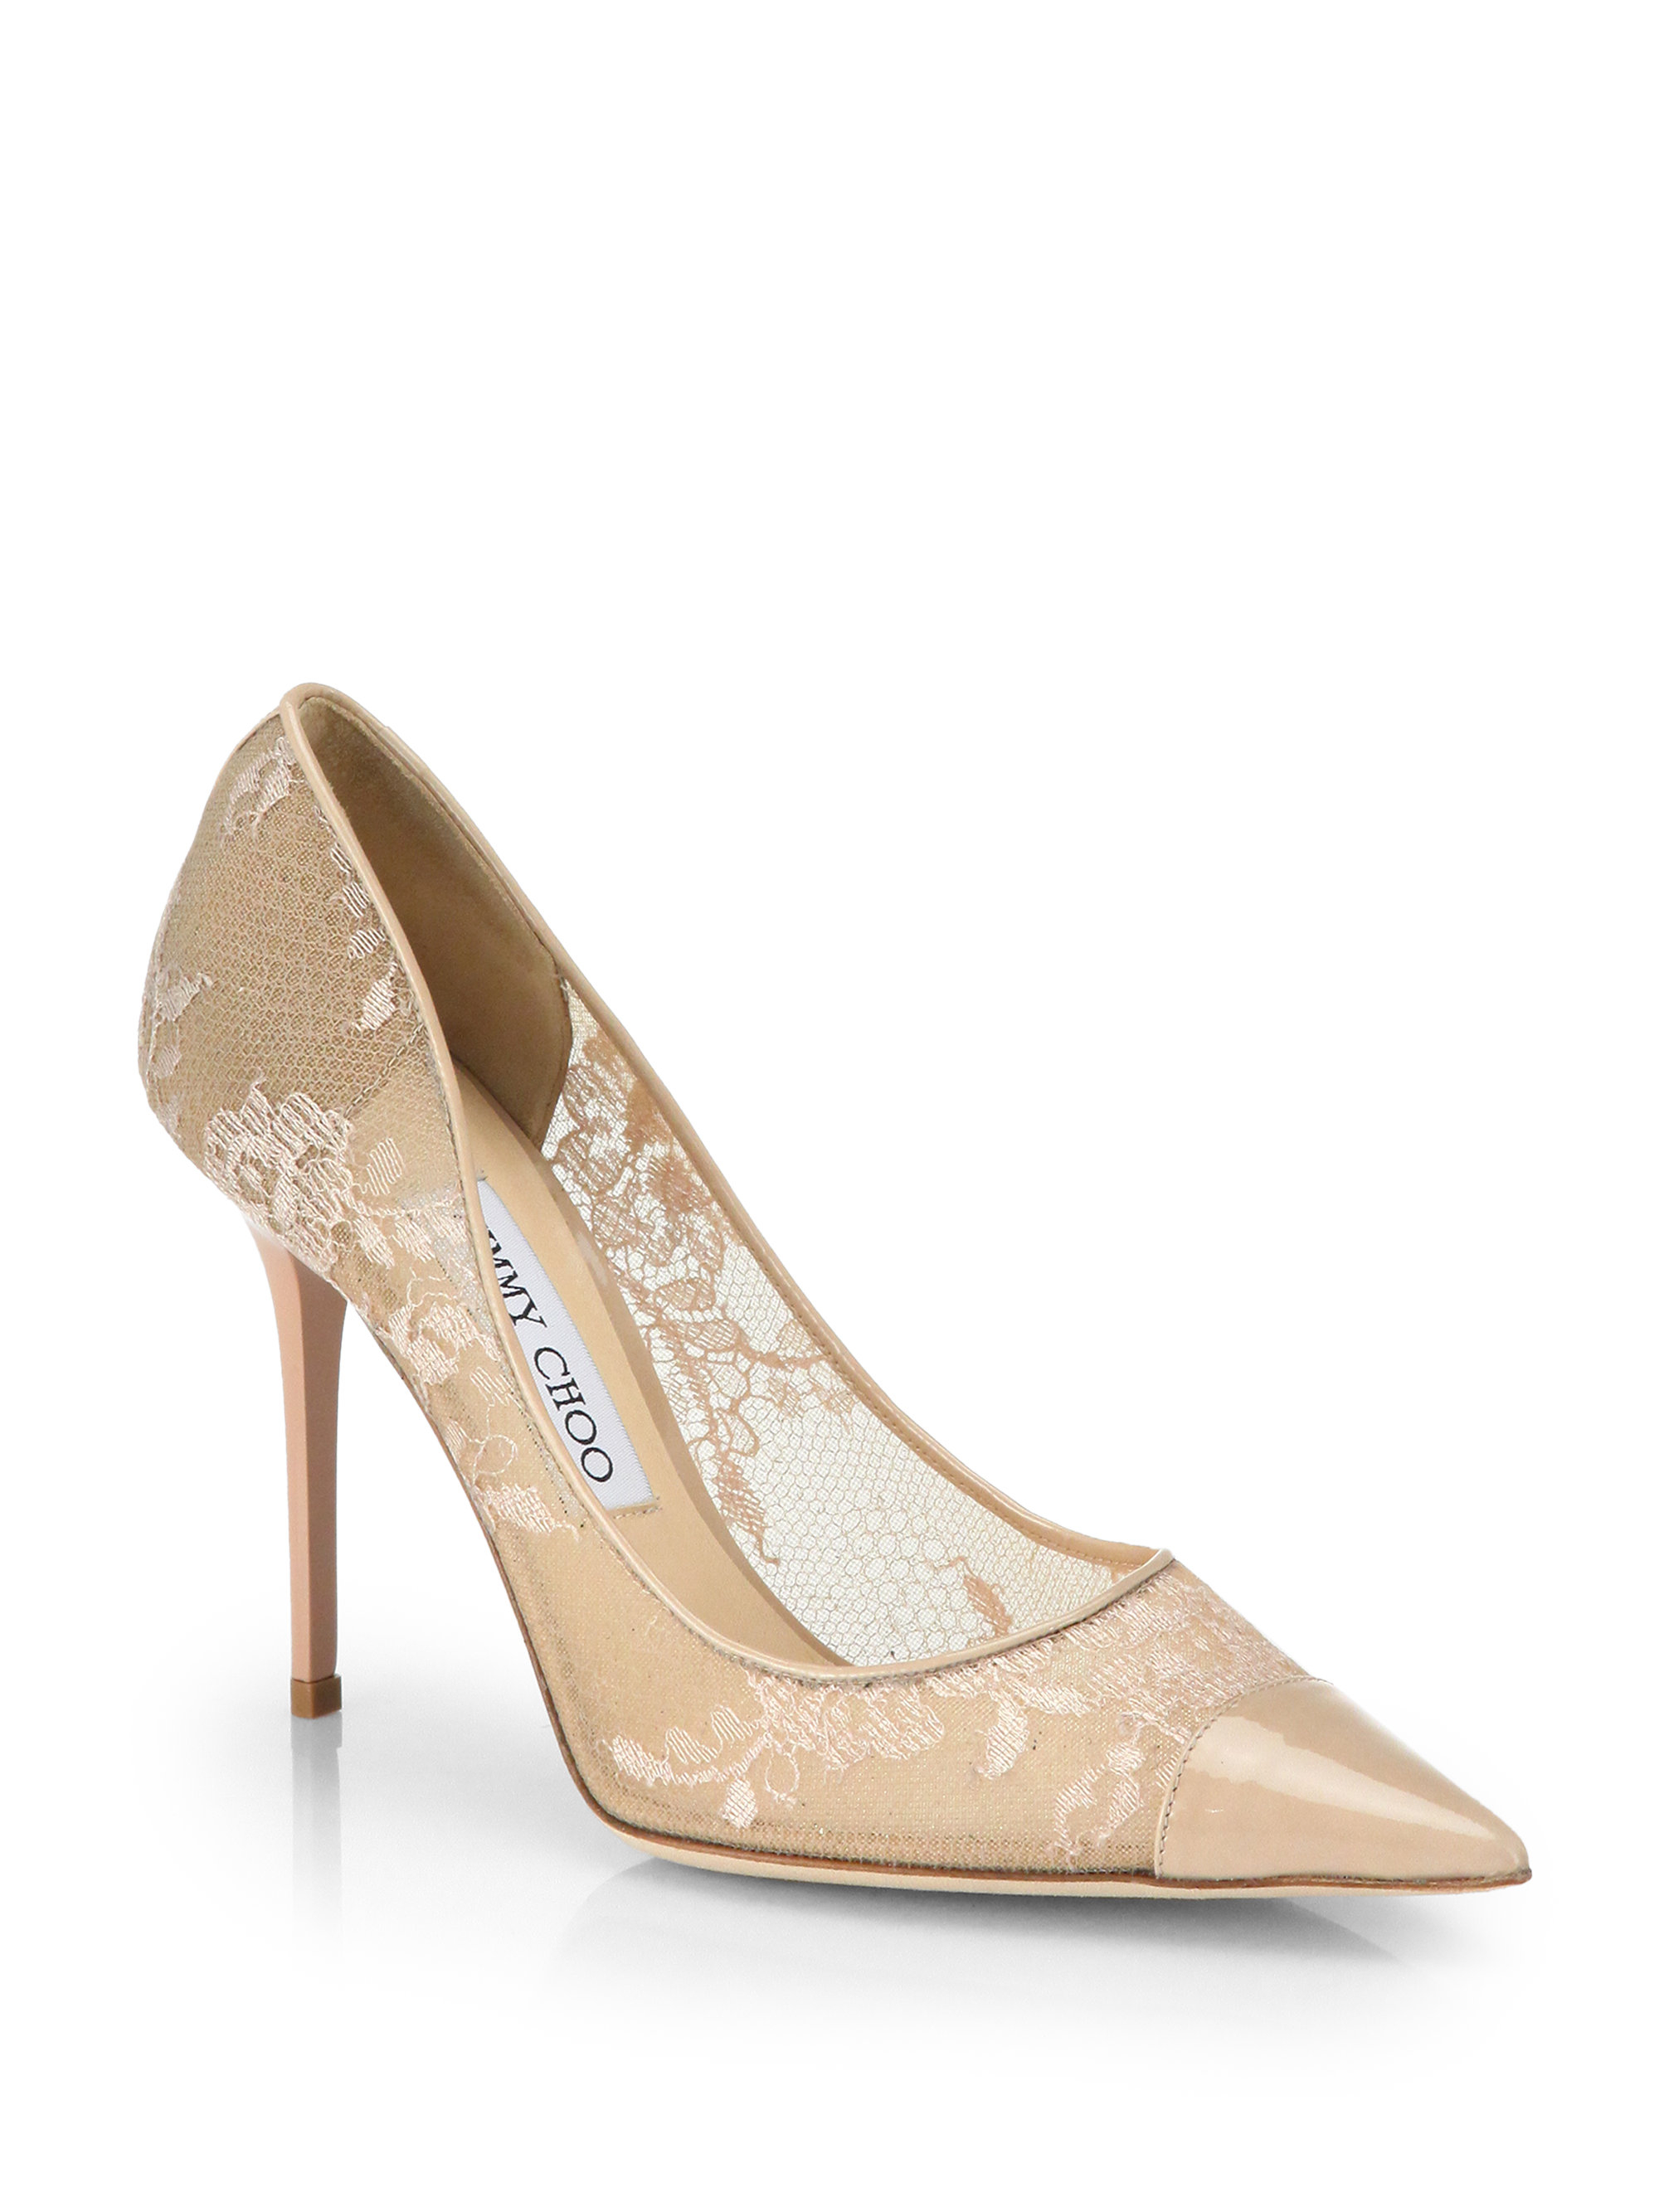 289492534336 2000 x 2667 www.lyst.com. Jimmy choo Amika Patent Leather  amp  Lace Pumps  in Black ...